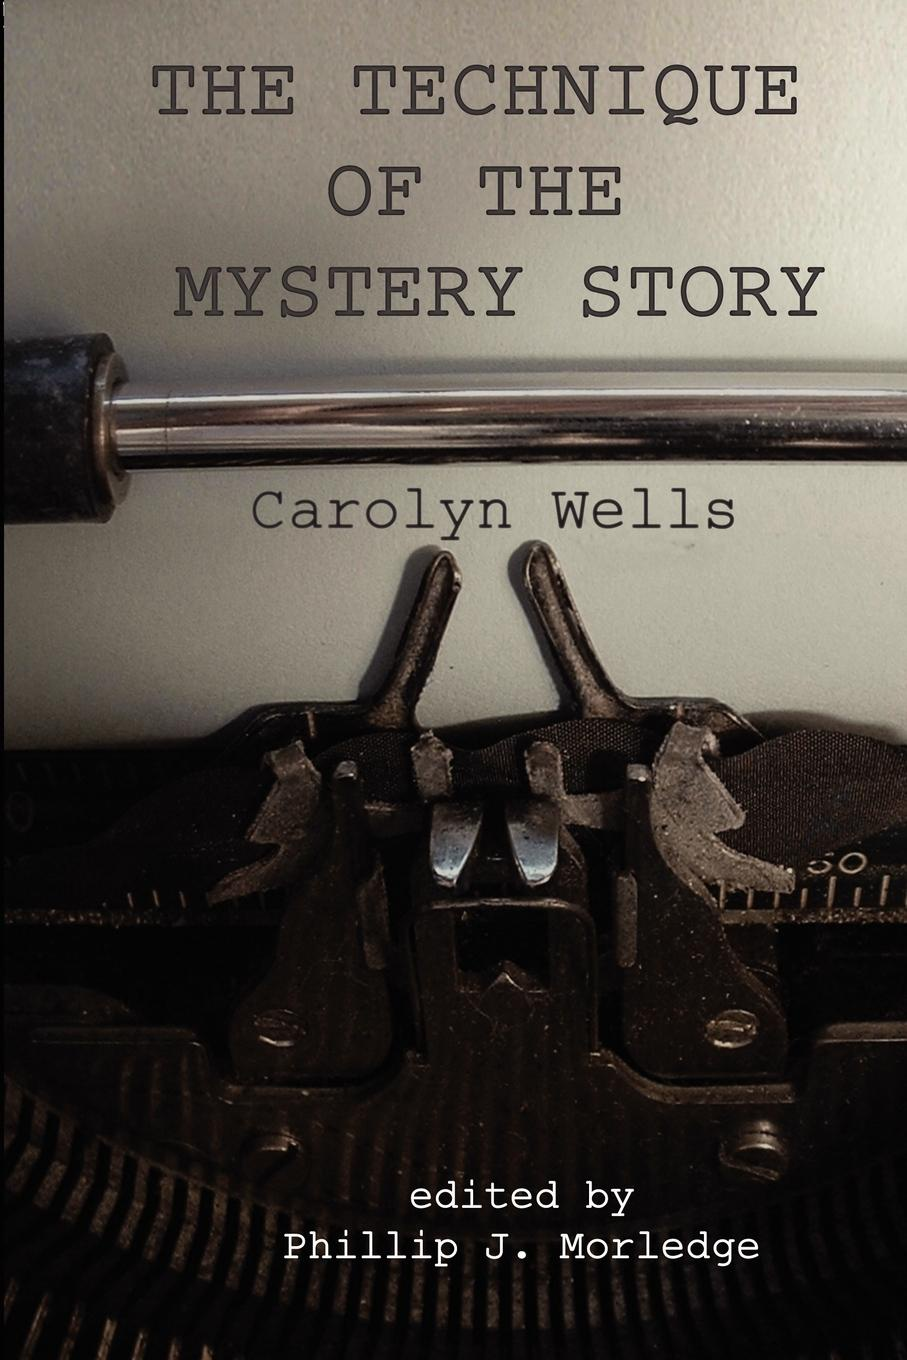 Phillip J. Morledge The Technique of the Mystery Story dr robert c worstell carolyn wells mystery story technique for writers